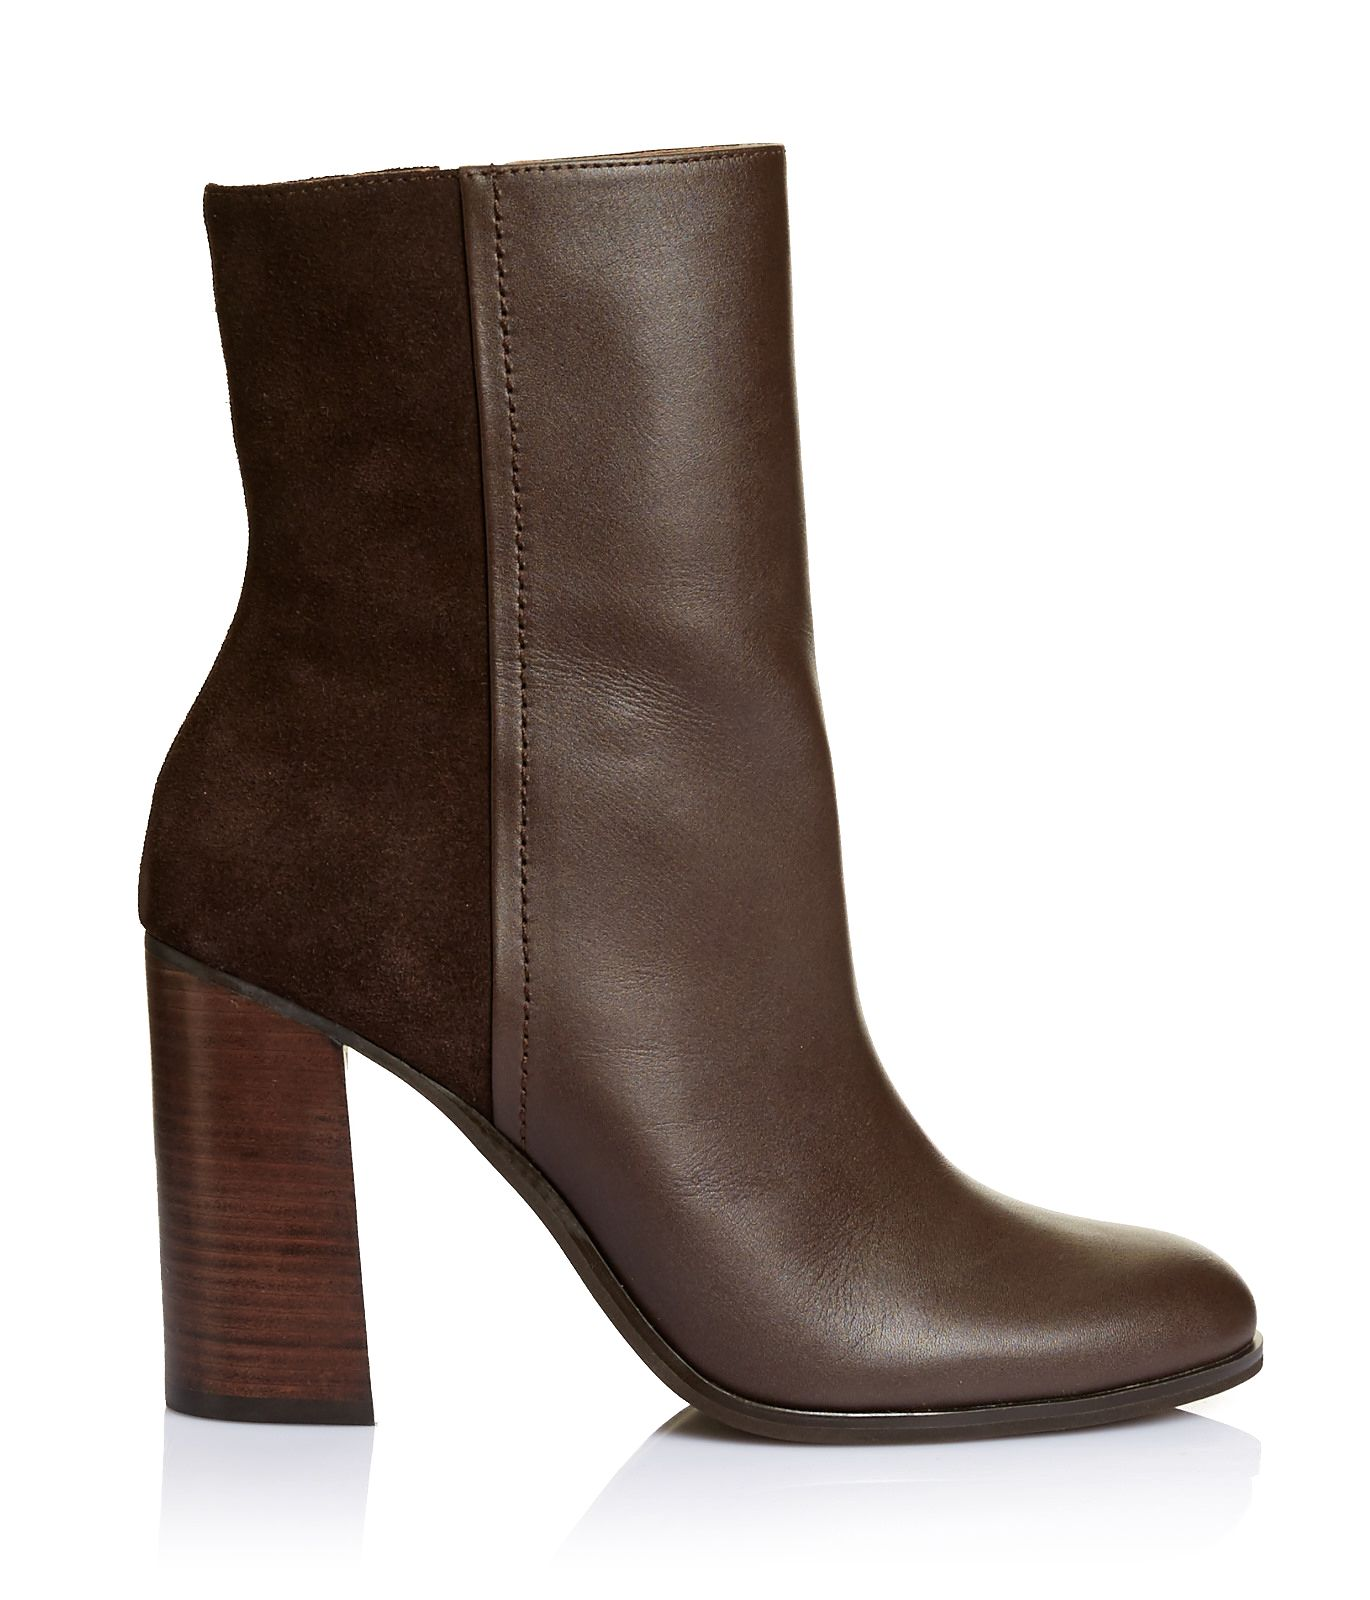 Natasha is a key boot for the season combining trends with a stacked block flare heel and high shaft to sit under cropped pants. In rich chocolate leather it is the perfect AW16 boot. Heel height 10cm. Upper: Leather Lining: Leather Outsole: Synthetic - See more at: http://www.saba.com.au/natasha-boot-9321143855908.html#start=2&cgid=accessories-womens-shoes